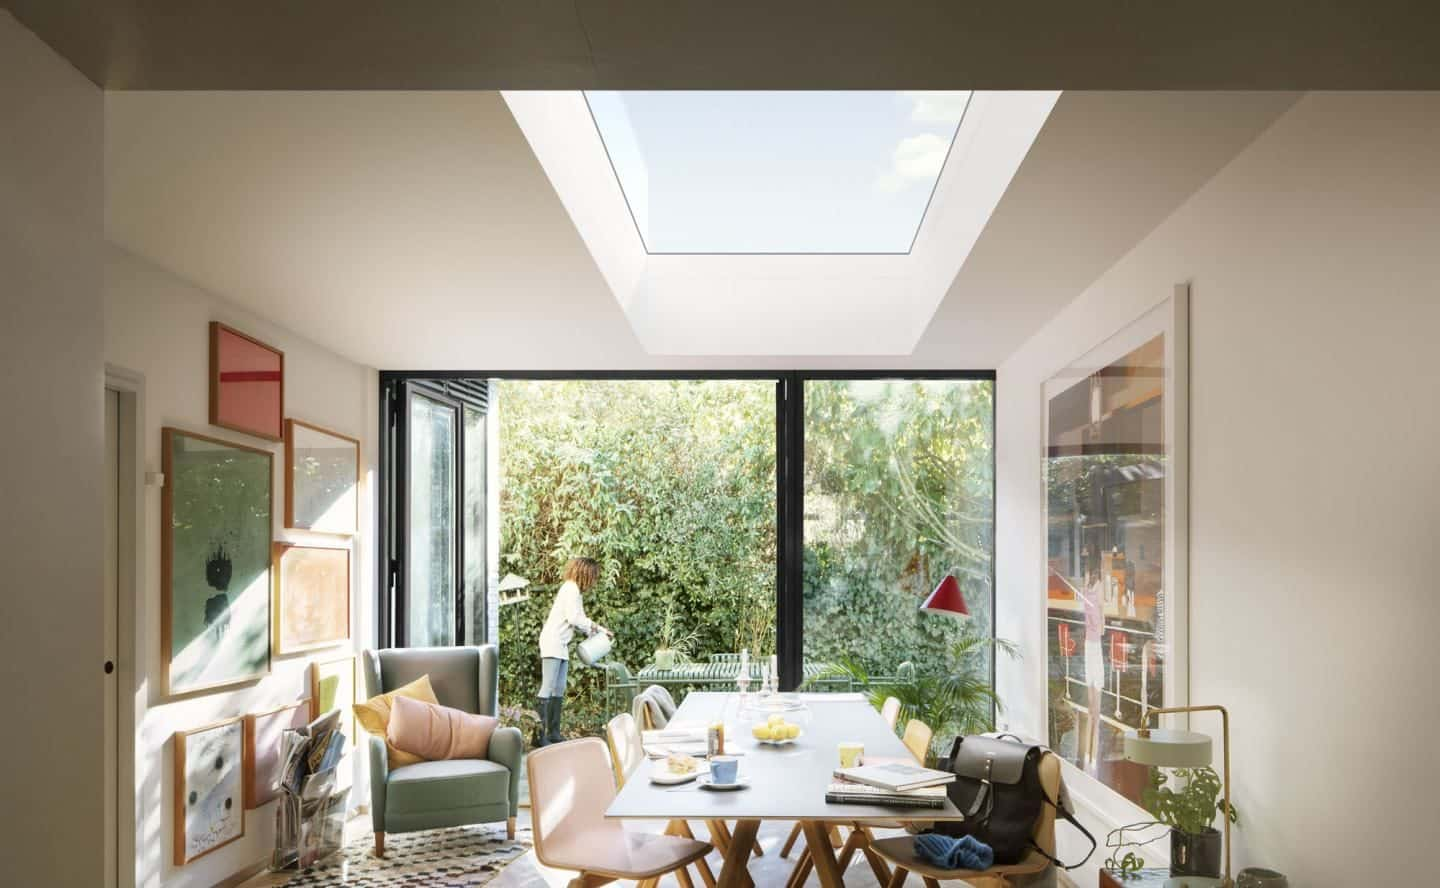 Vario by VELUX Bespoke Flat Roof Windows pictured above a dining room. Women seen outside bi-fold doors watering the garden.